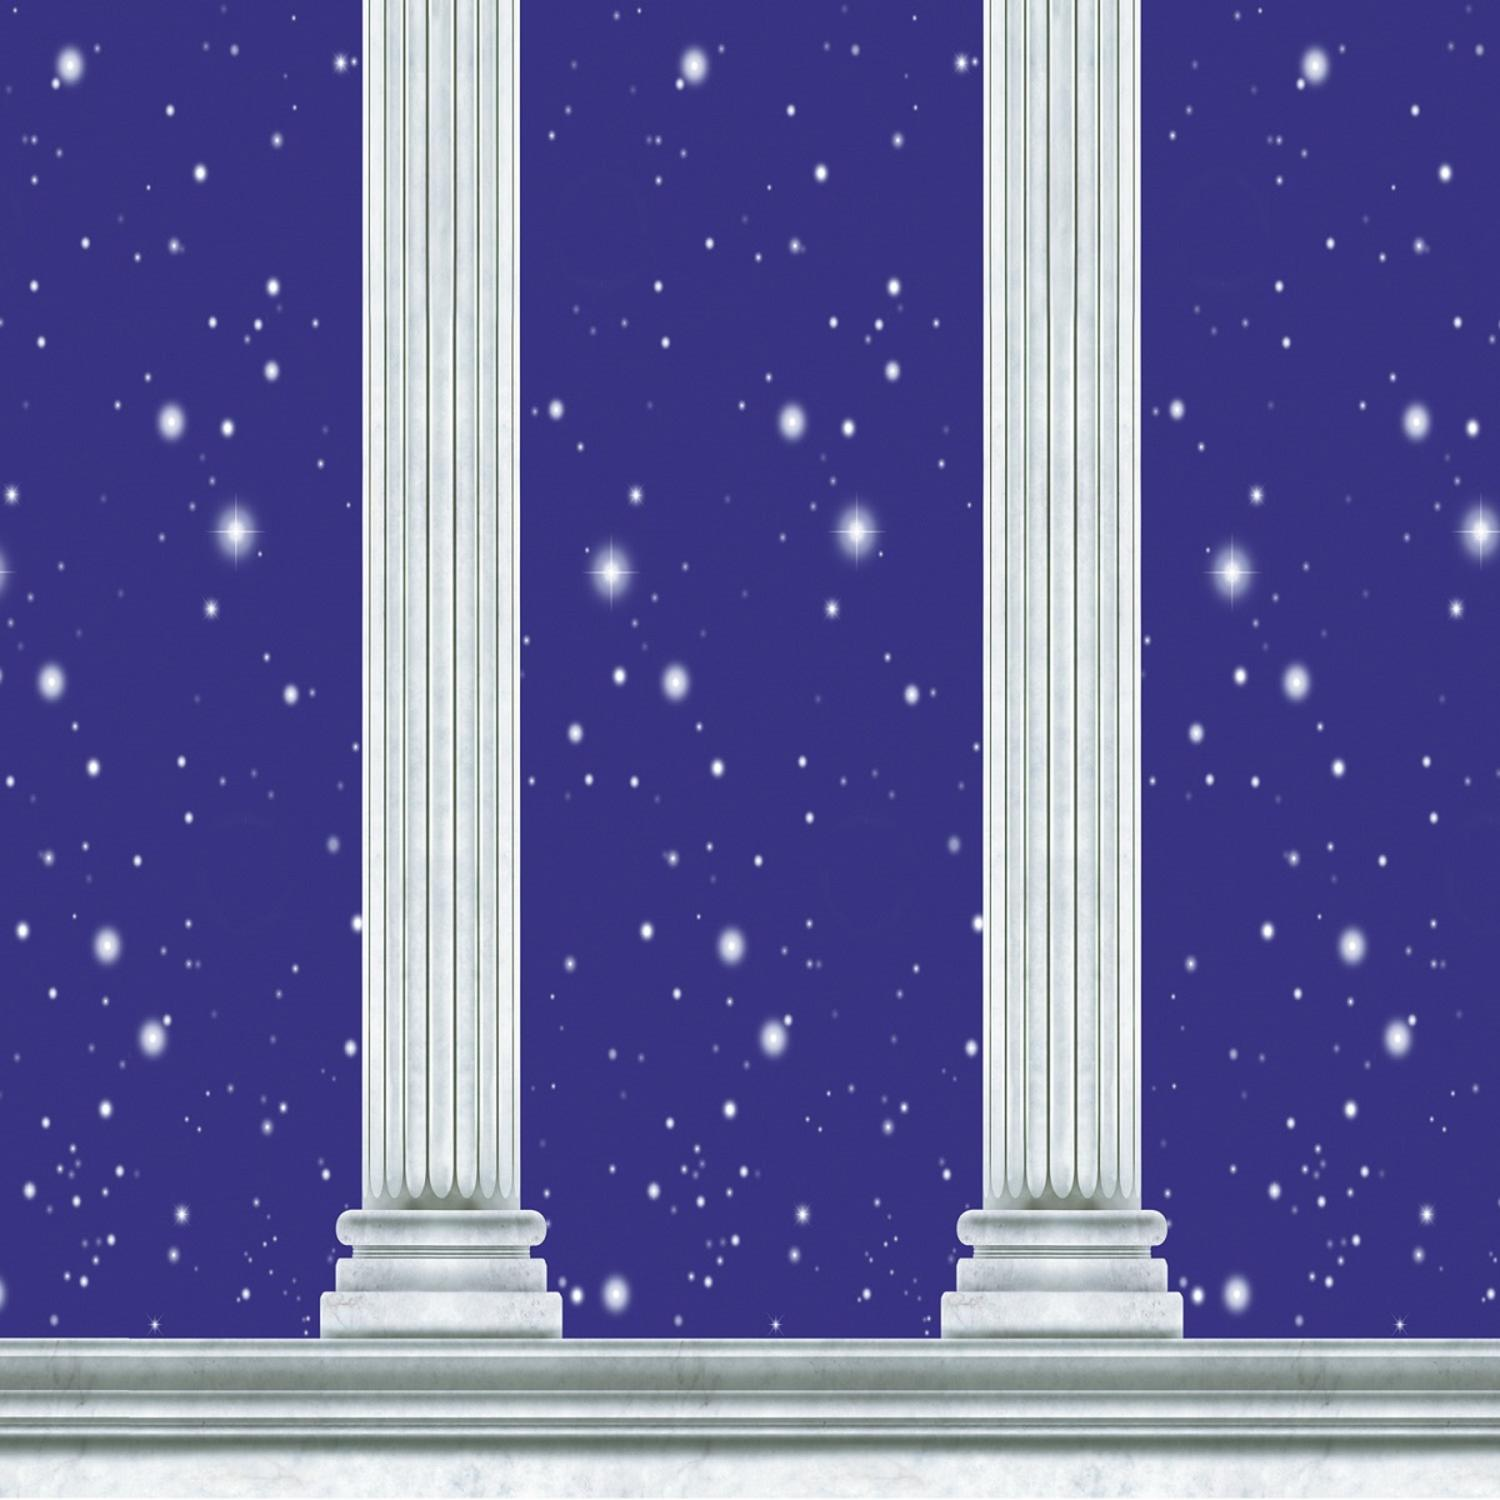 Pack of 6 Purple night Filled with stars and Columns Party Backdrop